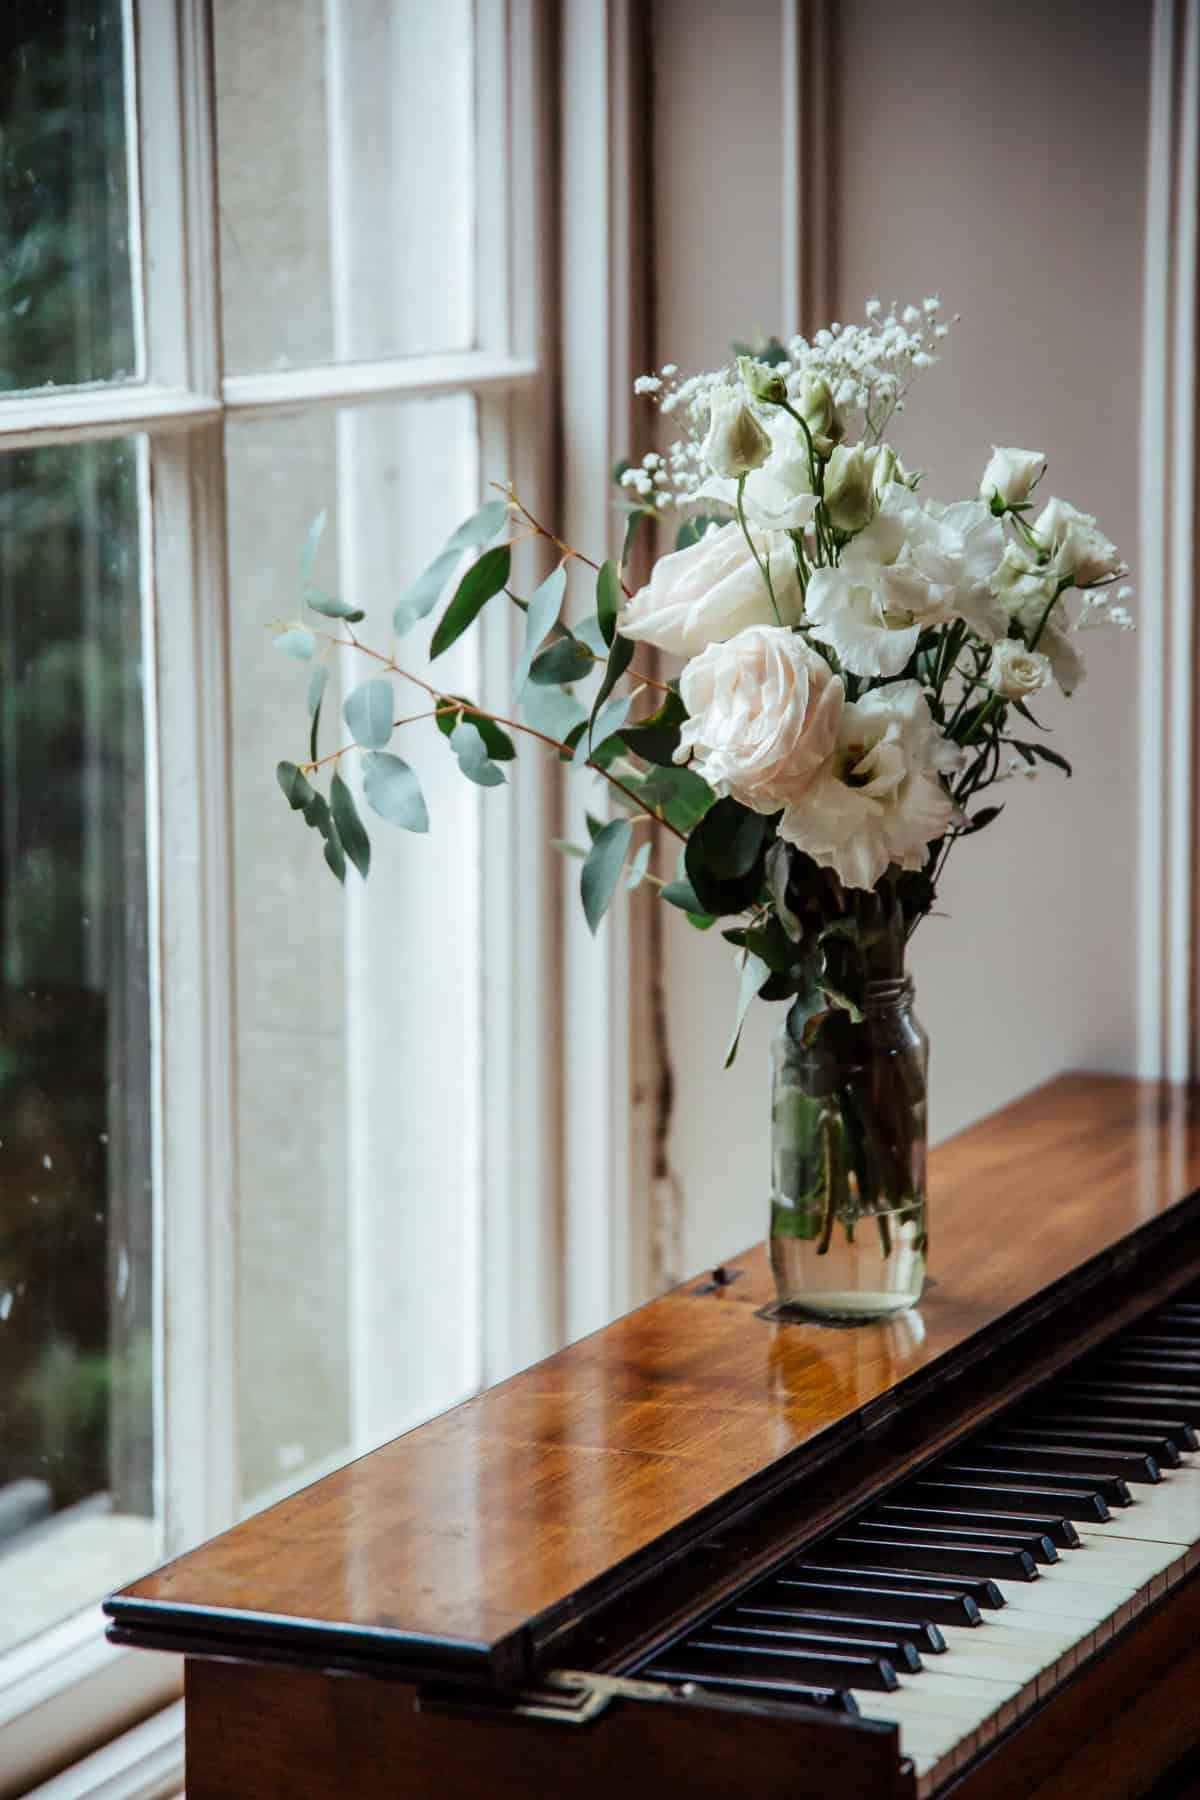 bouquet of white roses on a piano in manor house